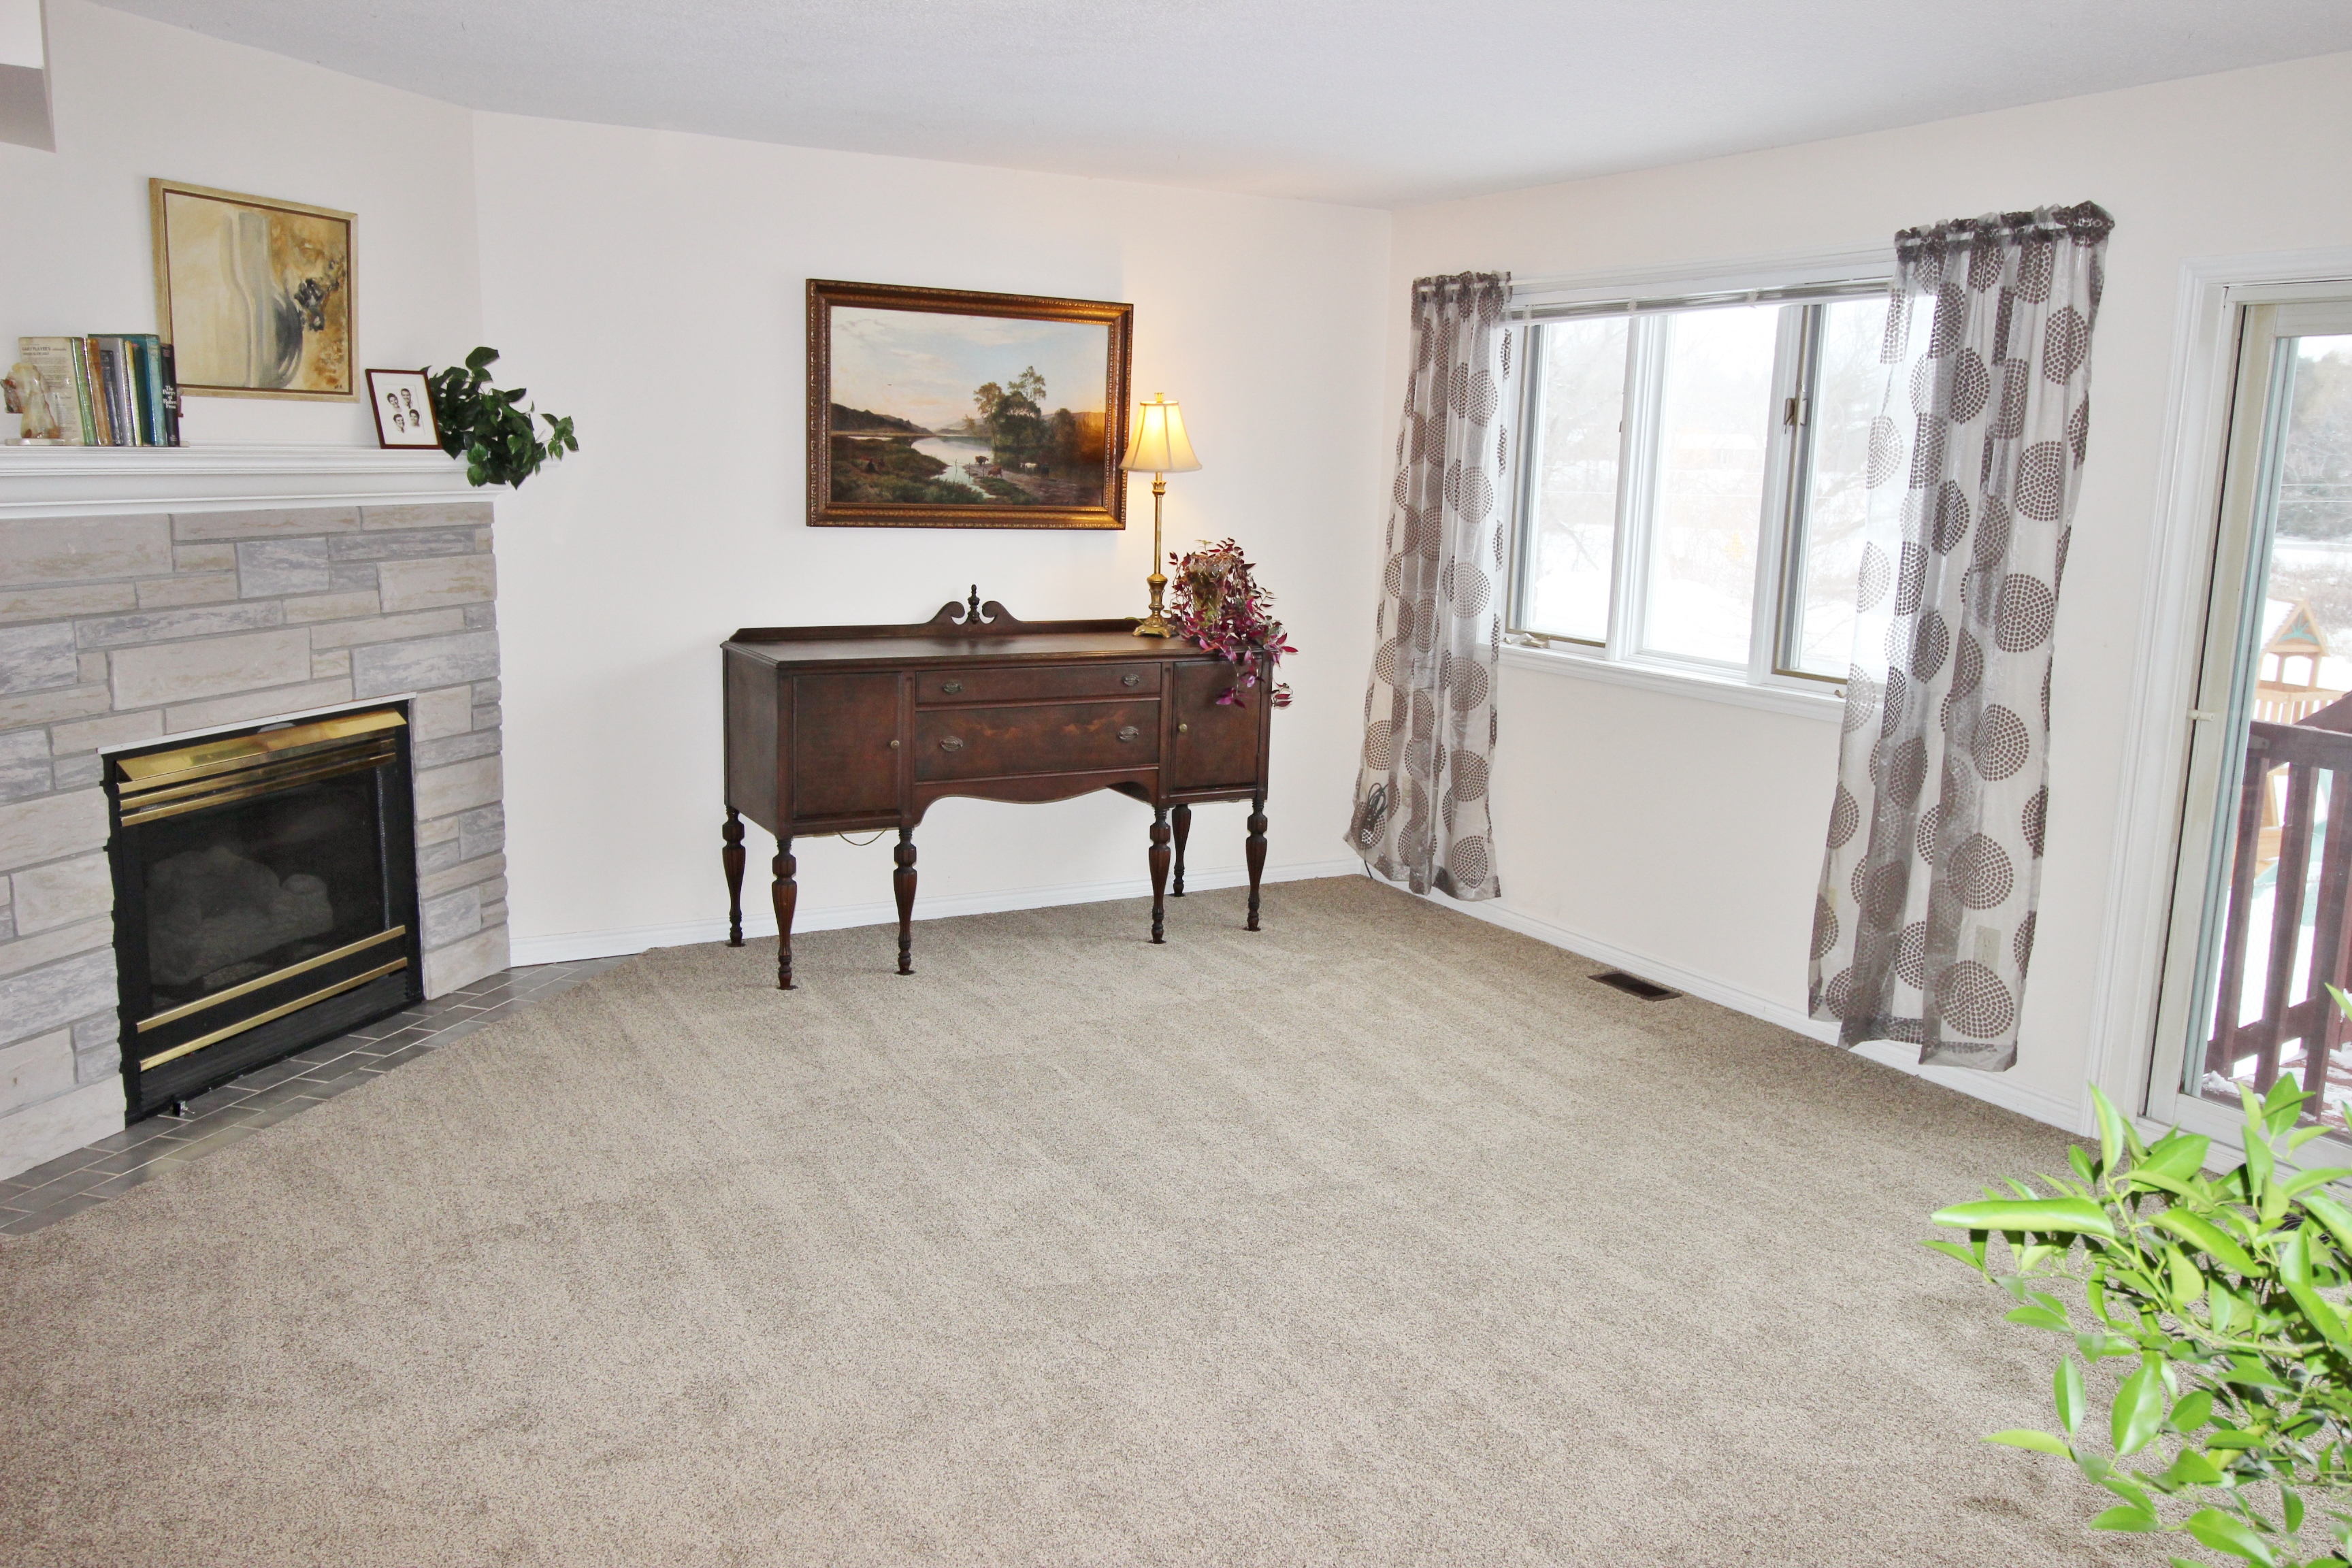 It's better to show good space with an empty room then a room with furniture that has an awkward layout online